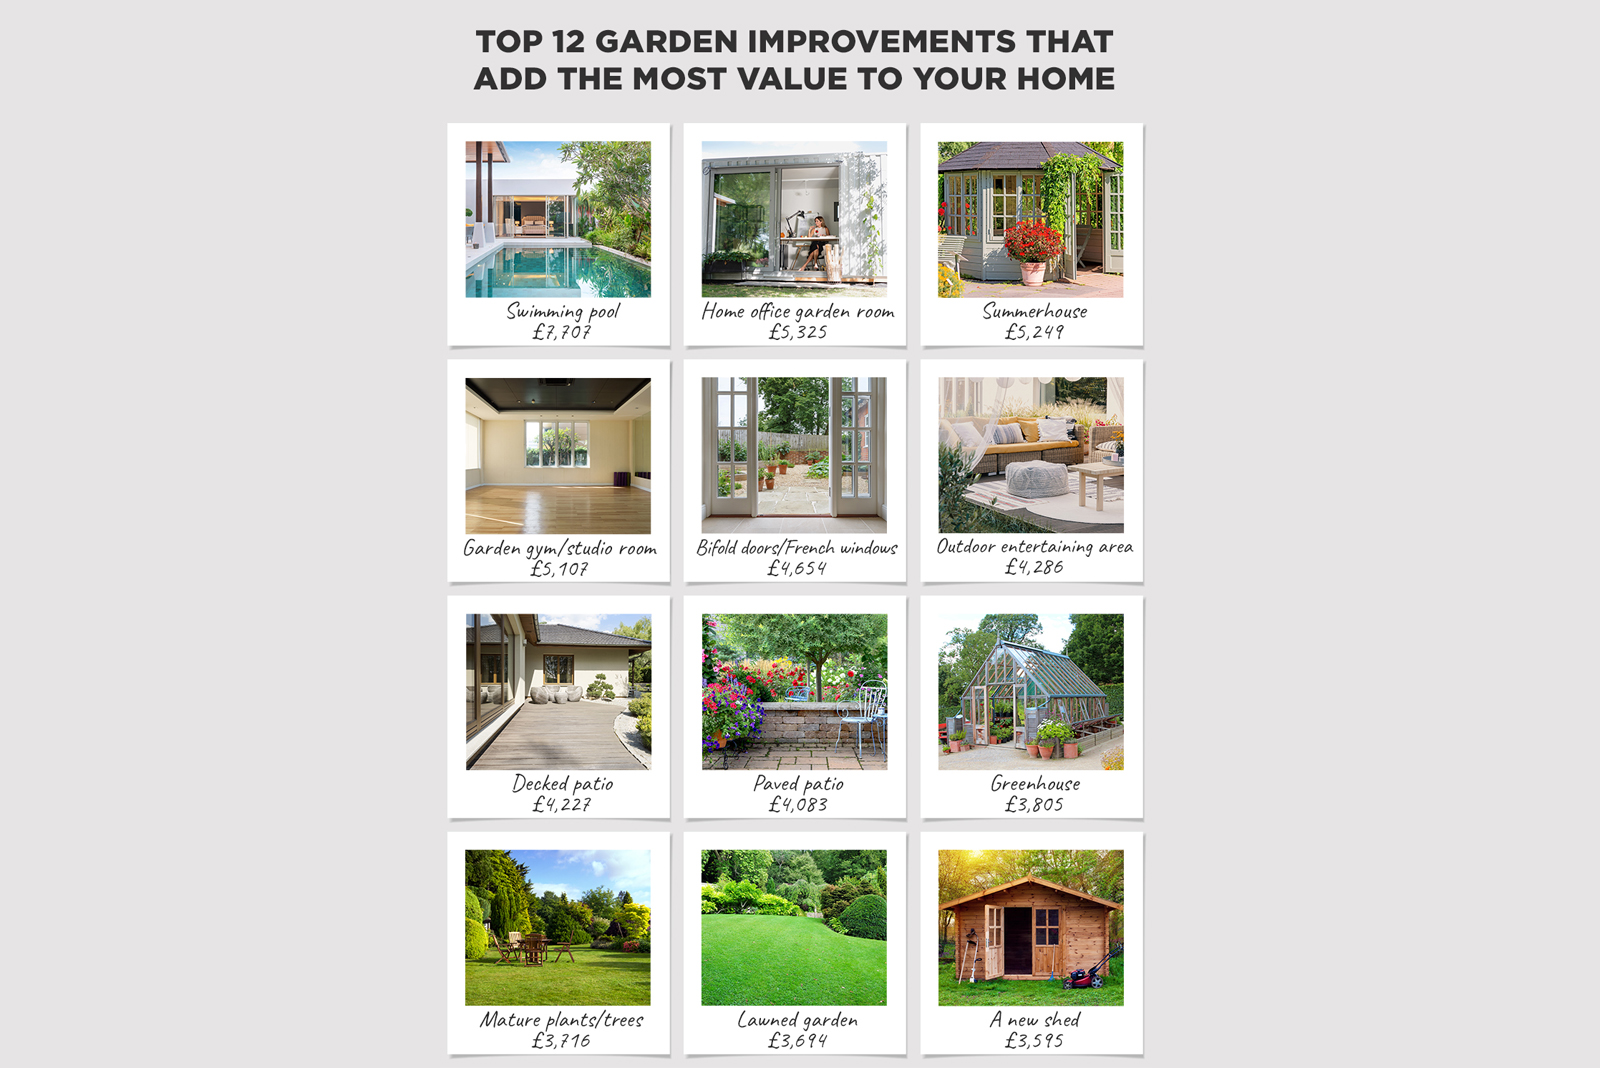 The garden improvements that now add the most value to your home